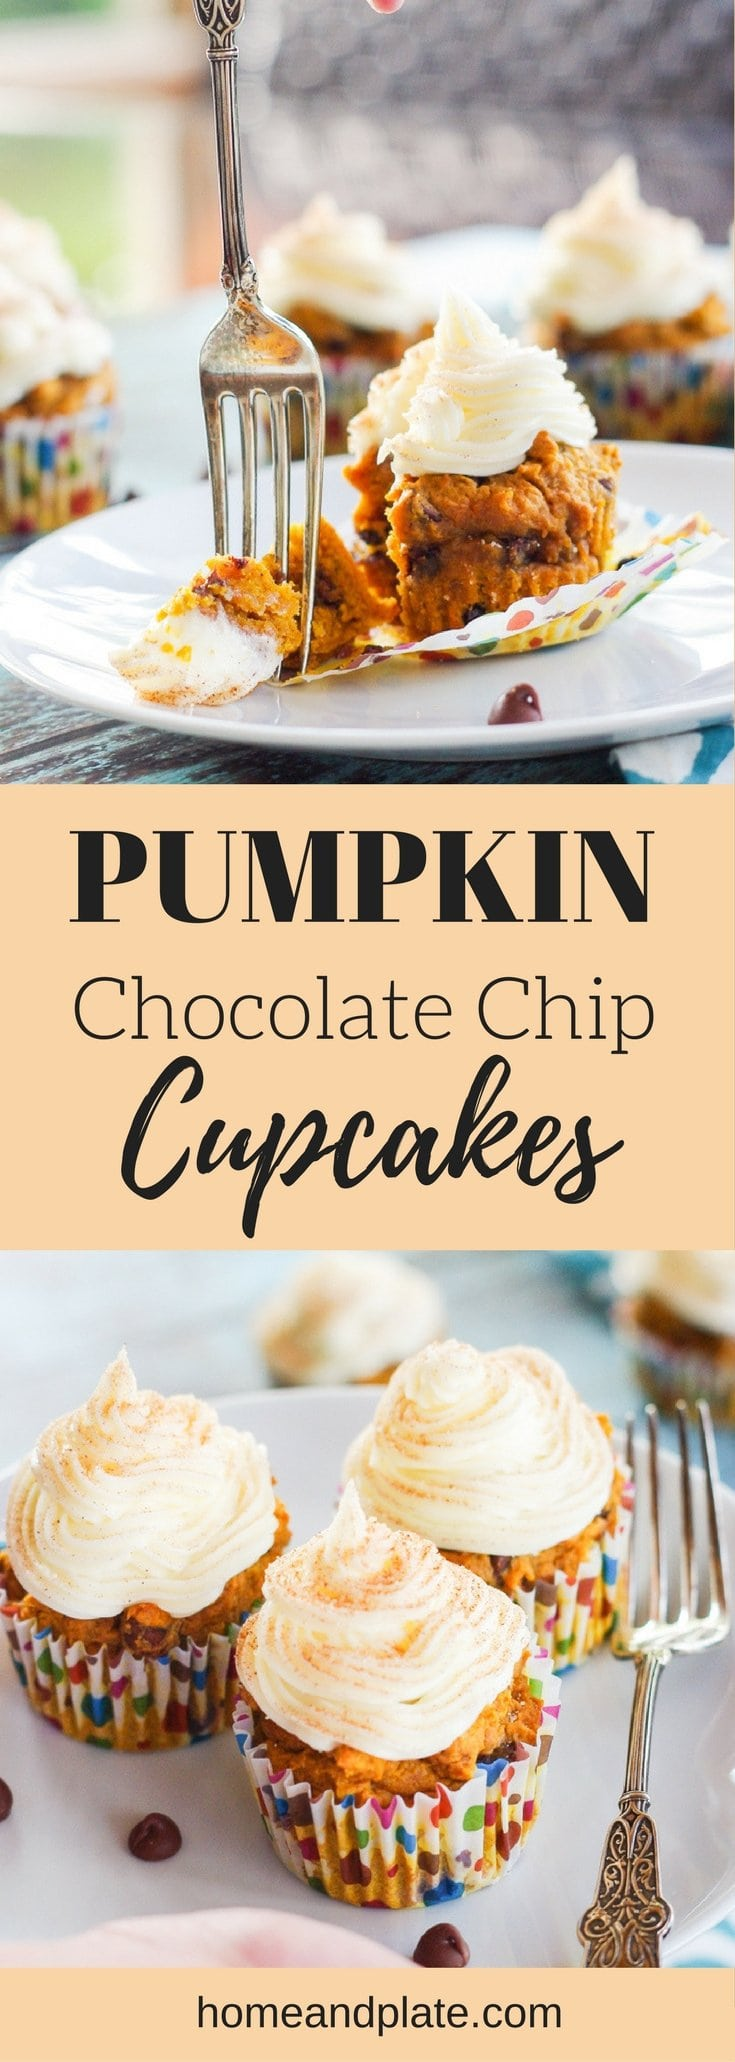 Pumpkin Chocolate Chip Cupcakes | Delicious for fall, these moist and sweet pumpkin cupcakes are sprinkled with chocolate chips and topped with cream cheese frosting. | www.homeandplate.com